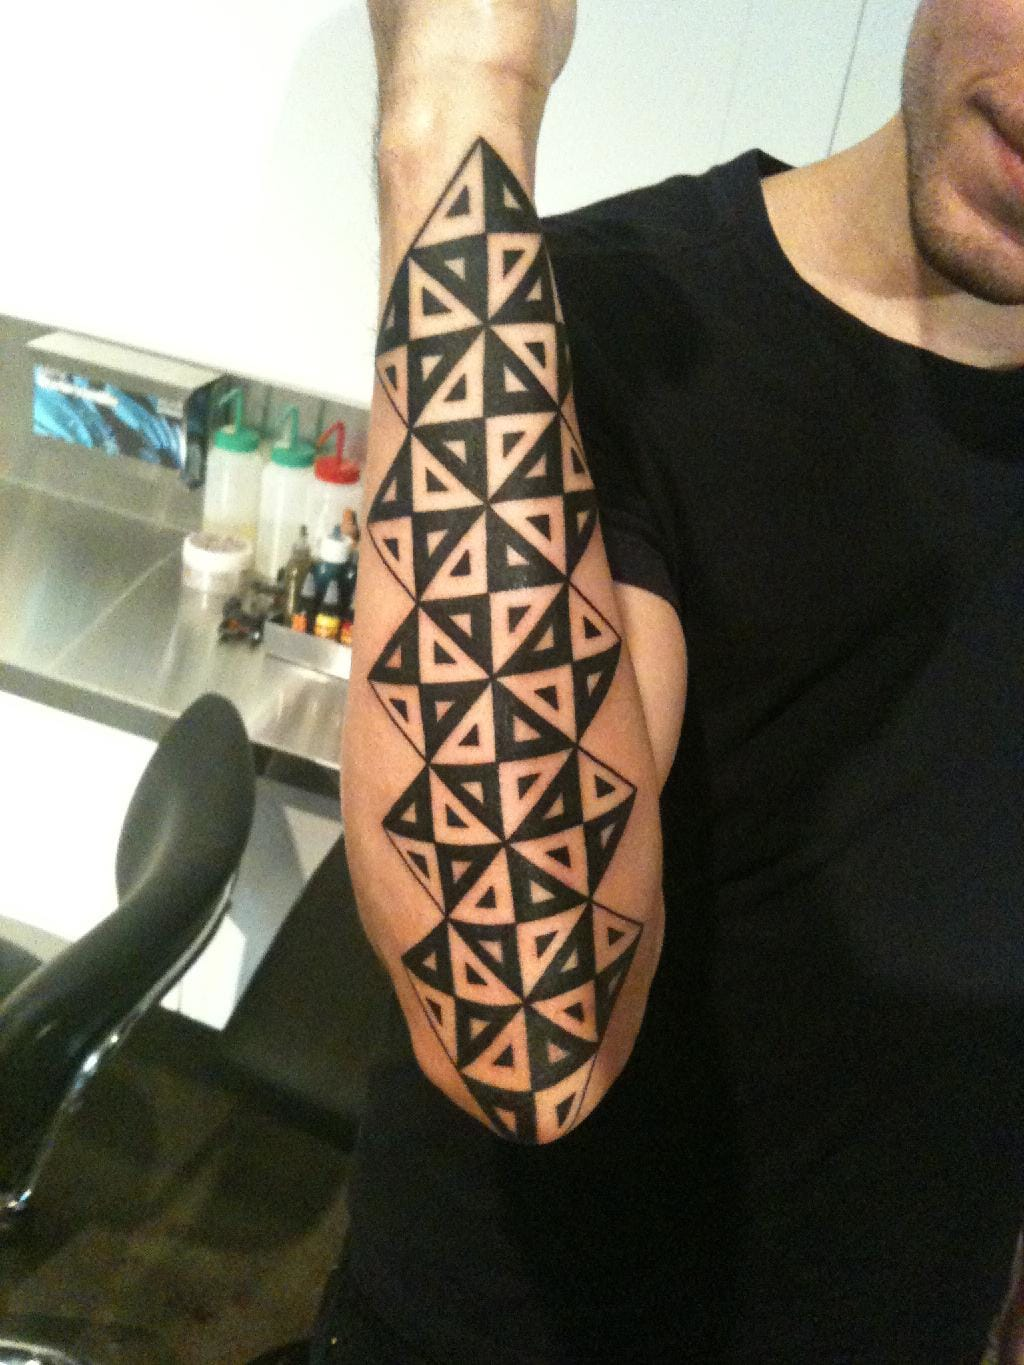 Example of simple geometric tattoos, by Lazer Liz.#geometric #geometry #lines #linework #LazerLiz